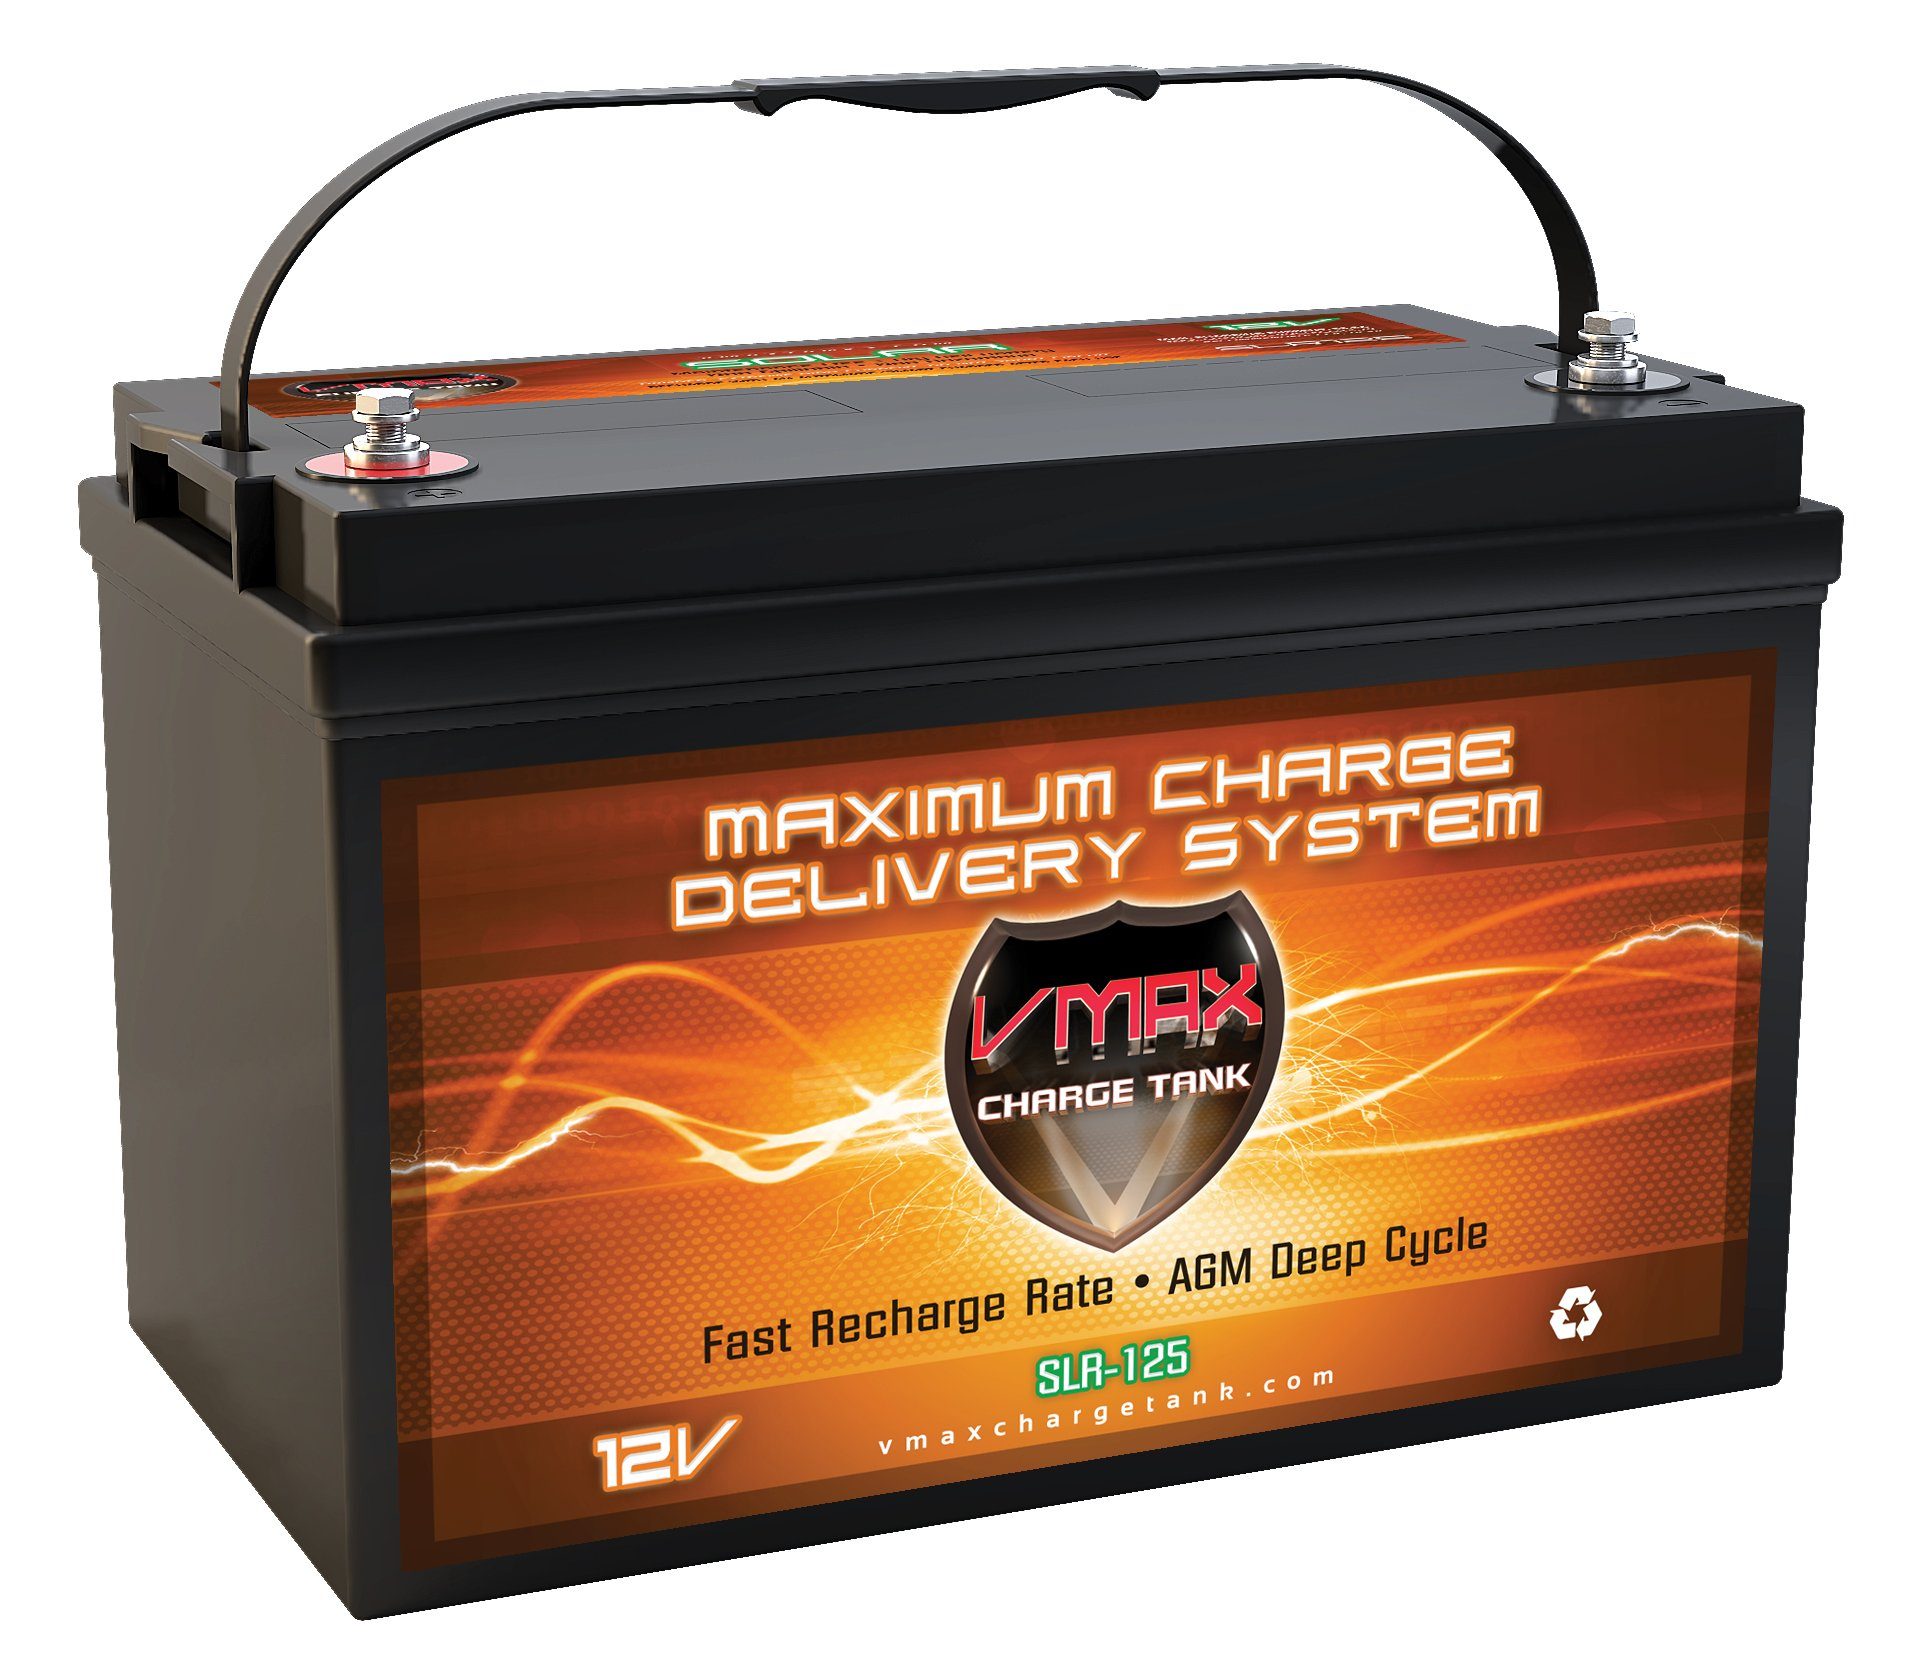 Best RV Battery: